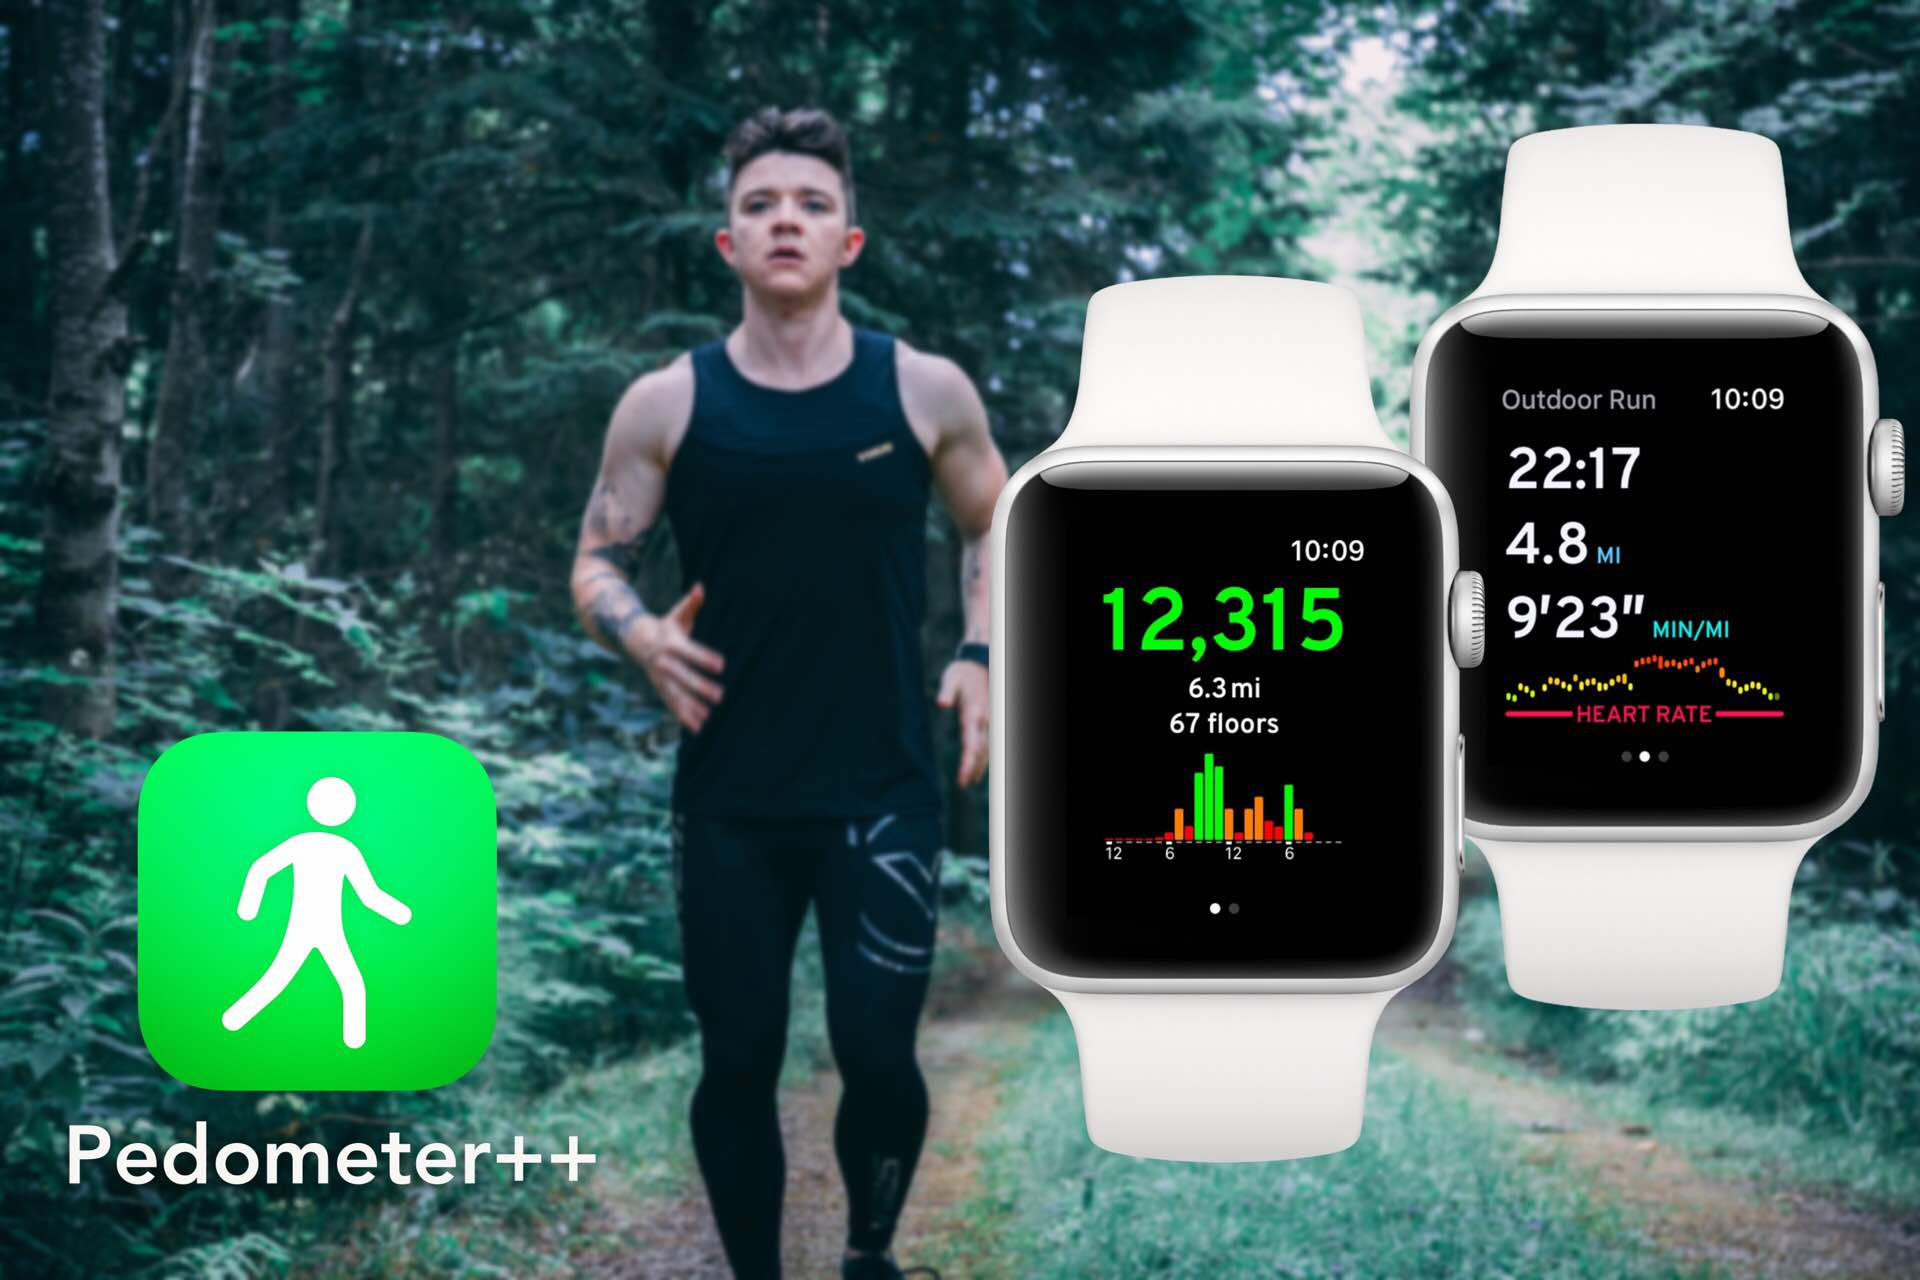 pedometer-3-3-for-apple-watch-and-iphone-alora-griffiths